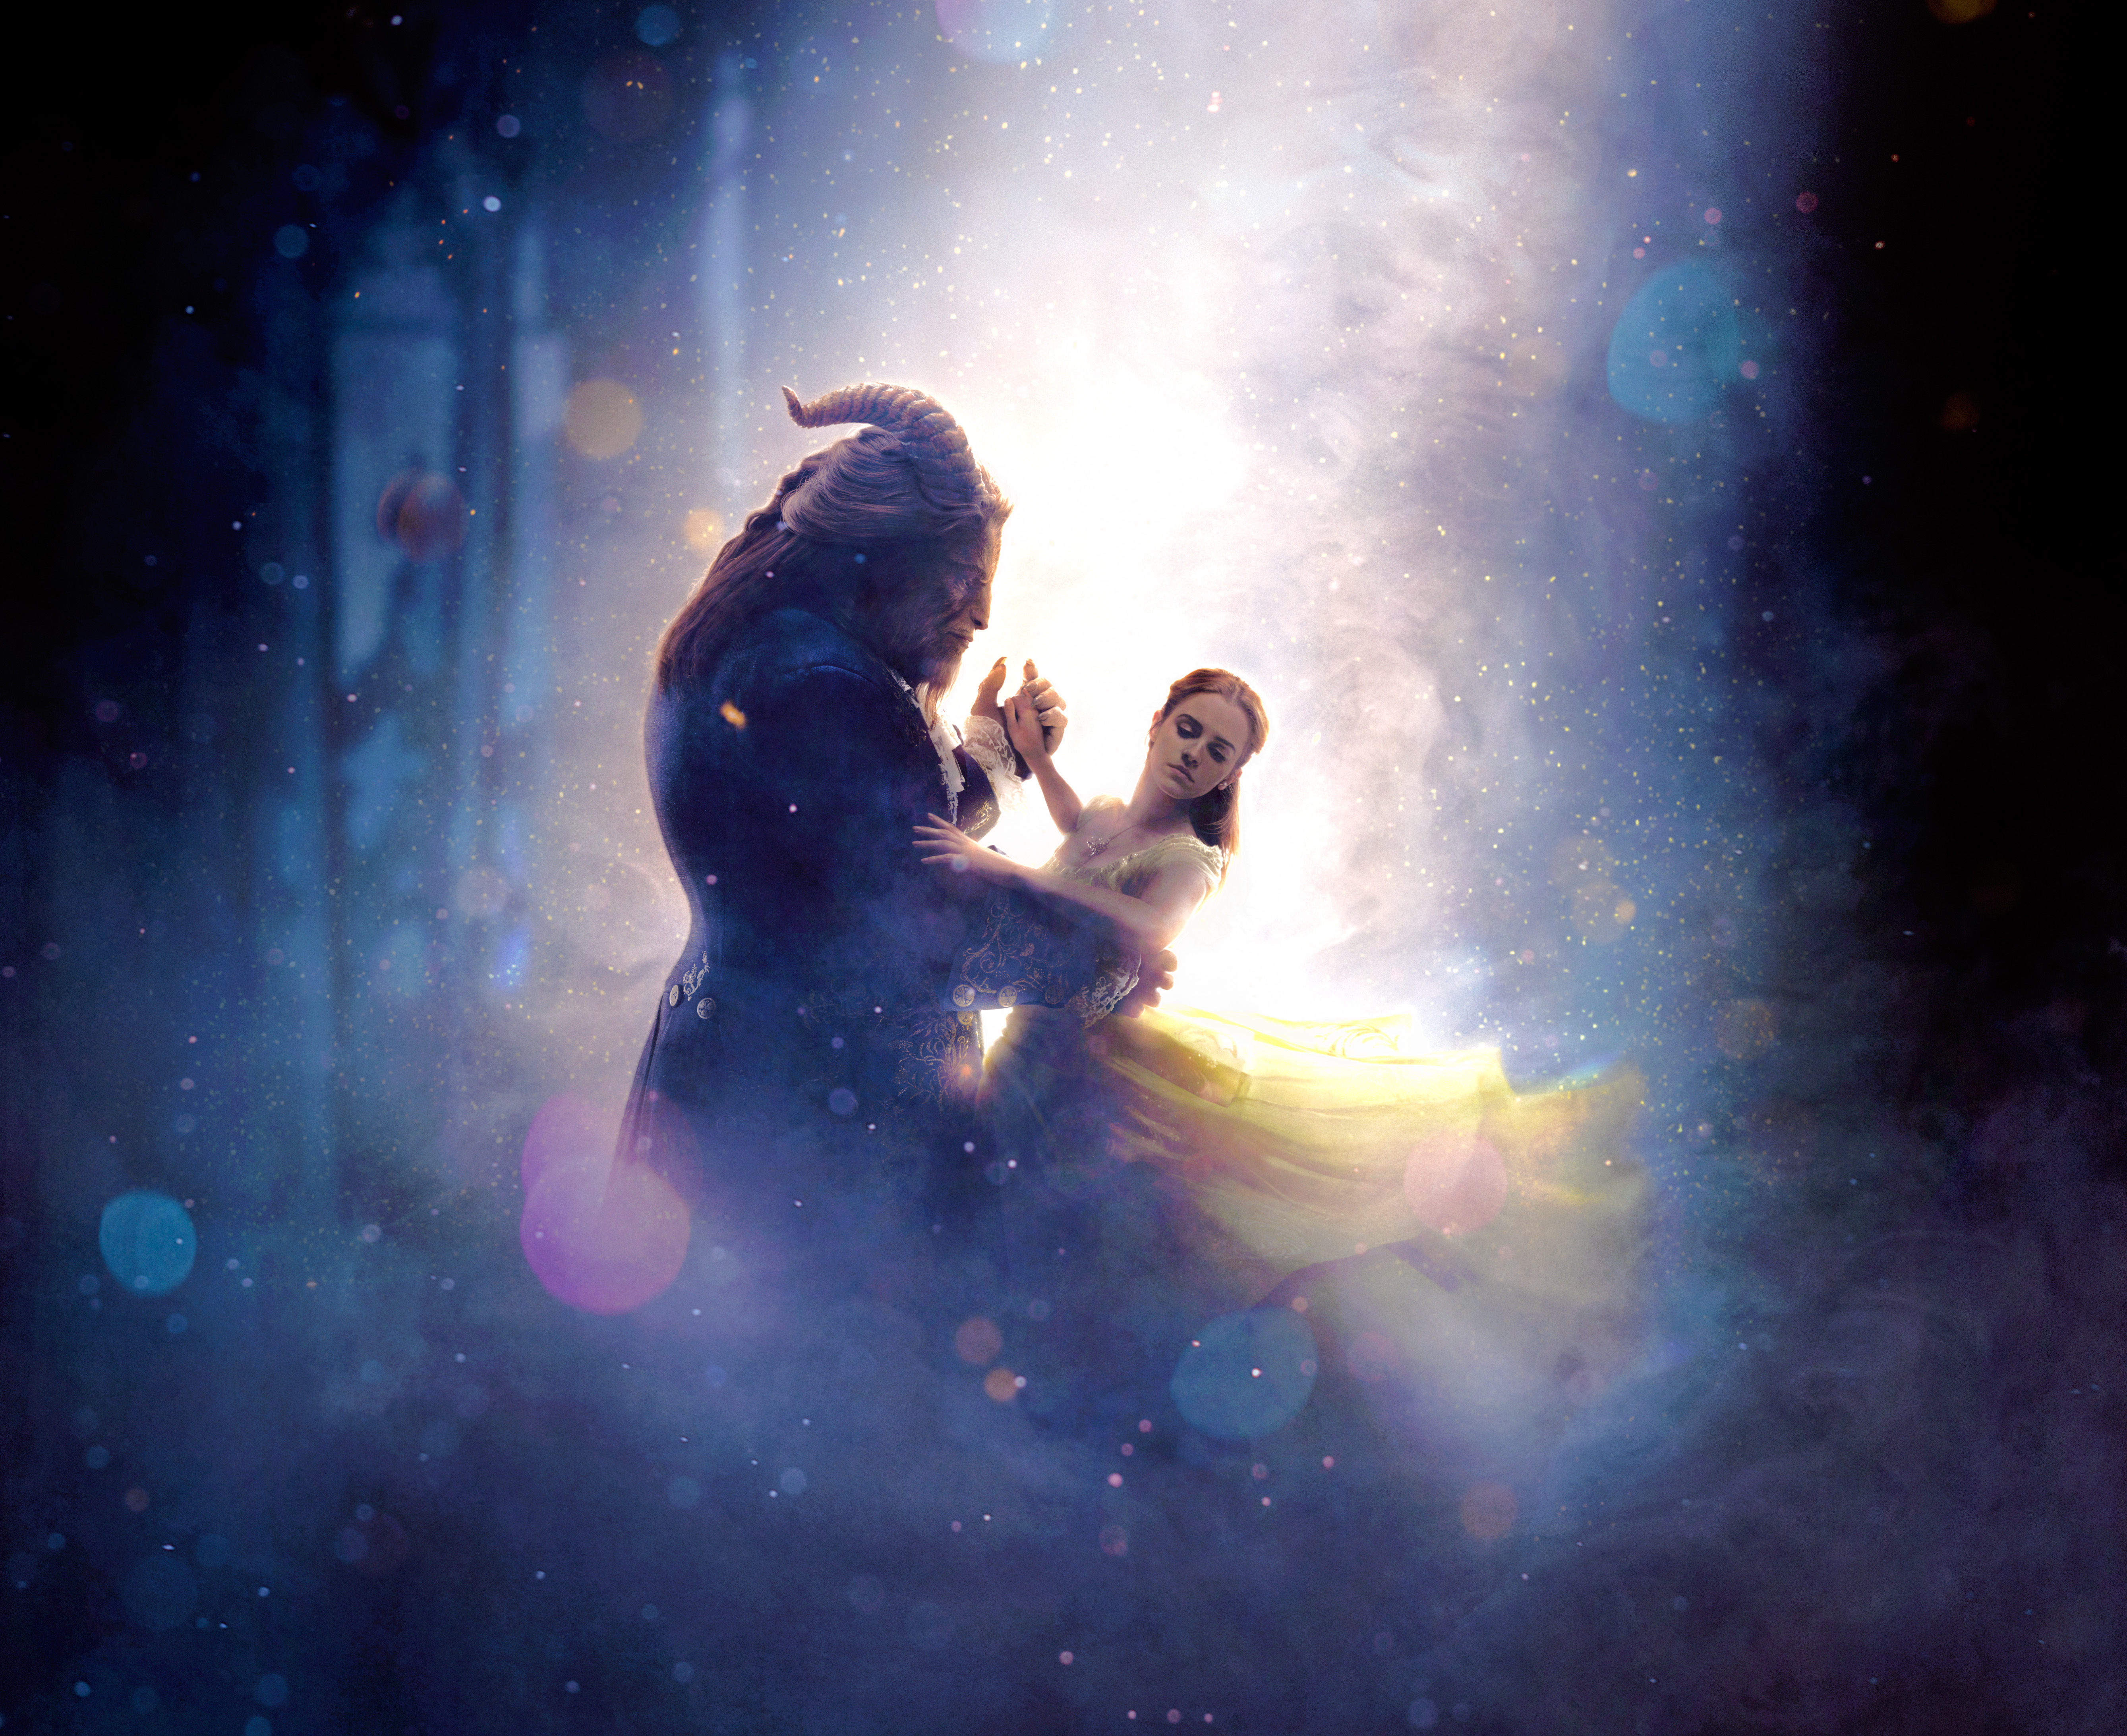 HQ Beauty And The Beast (2017) Wallpapers | File 7781.89Kb